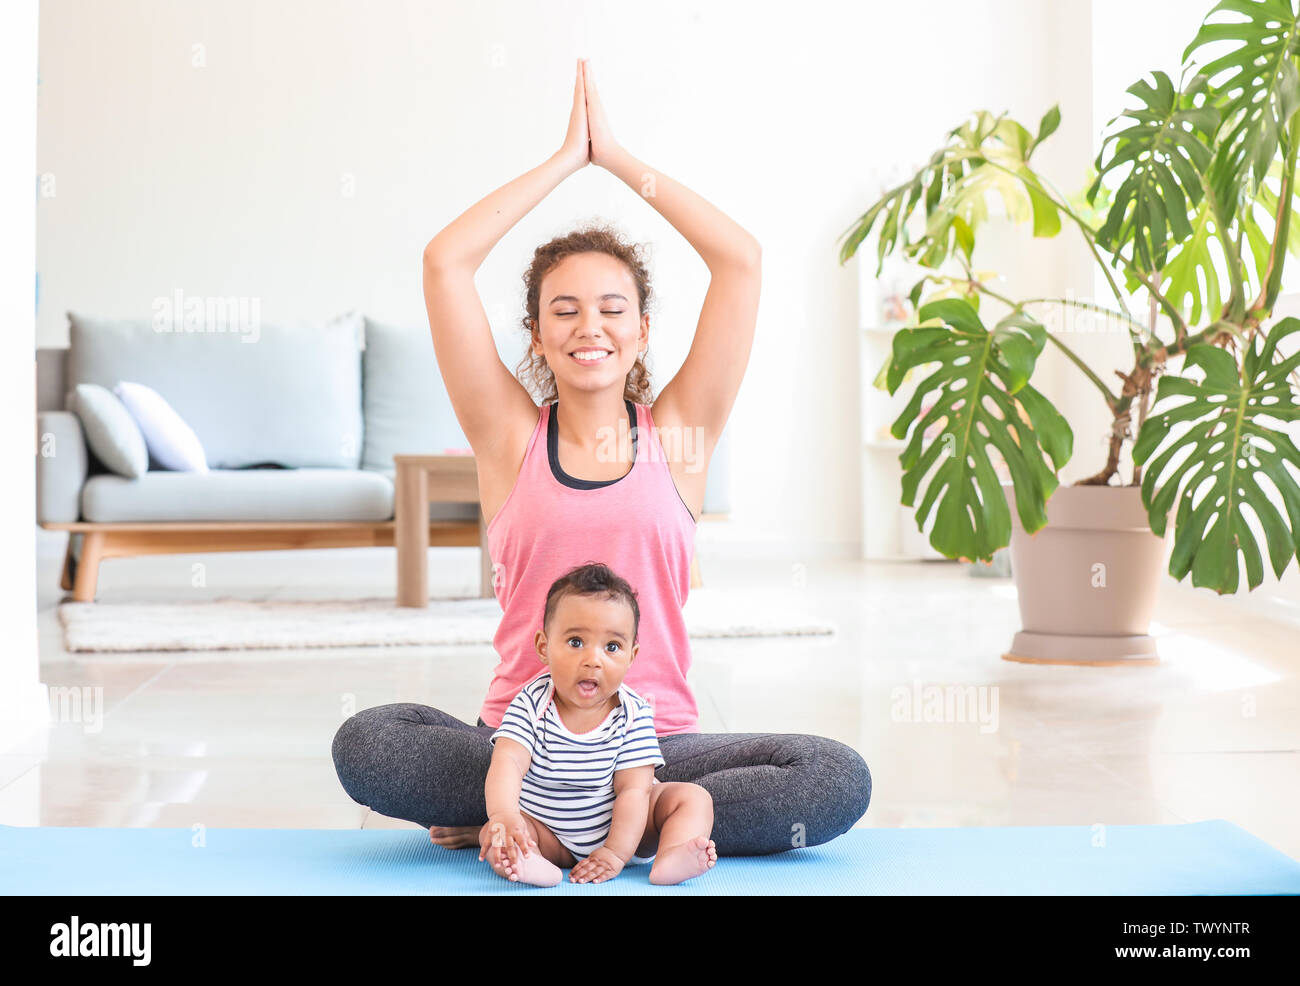 African-American woman with cute little baby practicing yoga at home - Stock Image